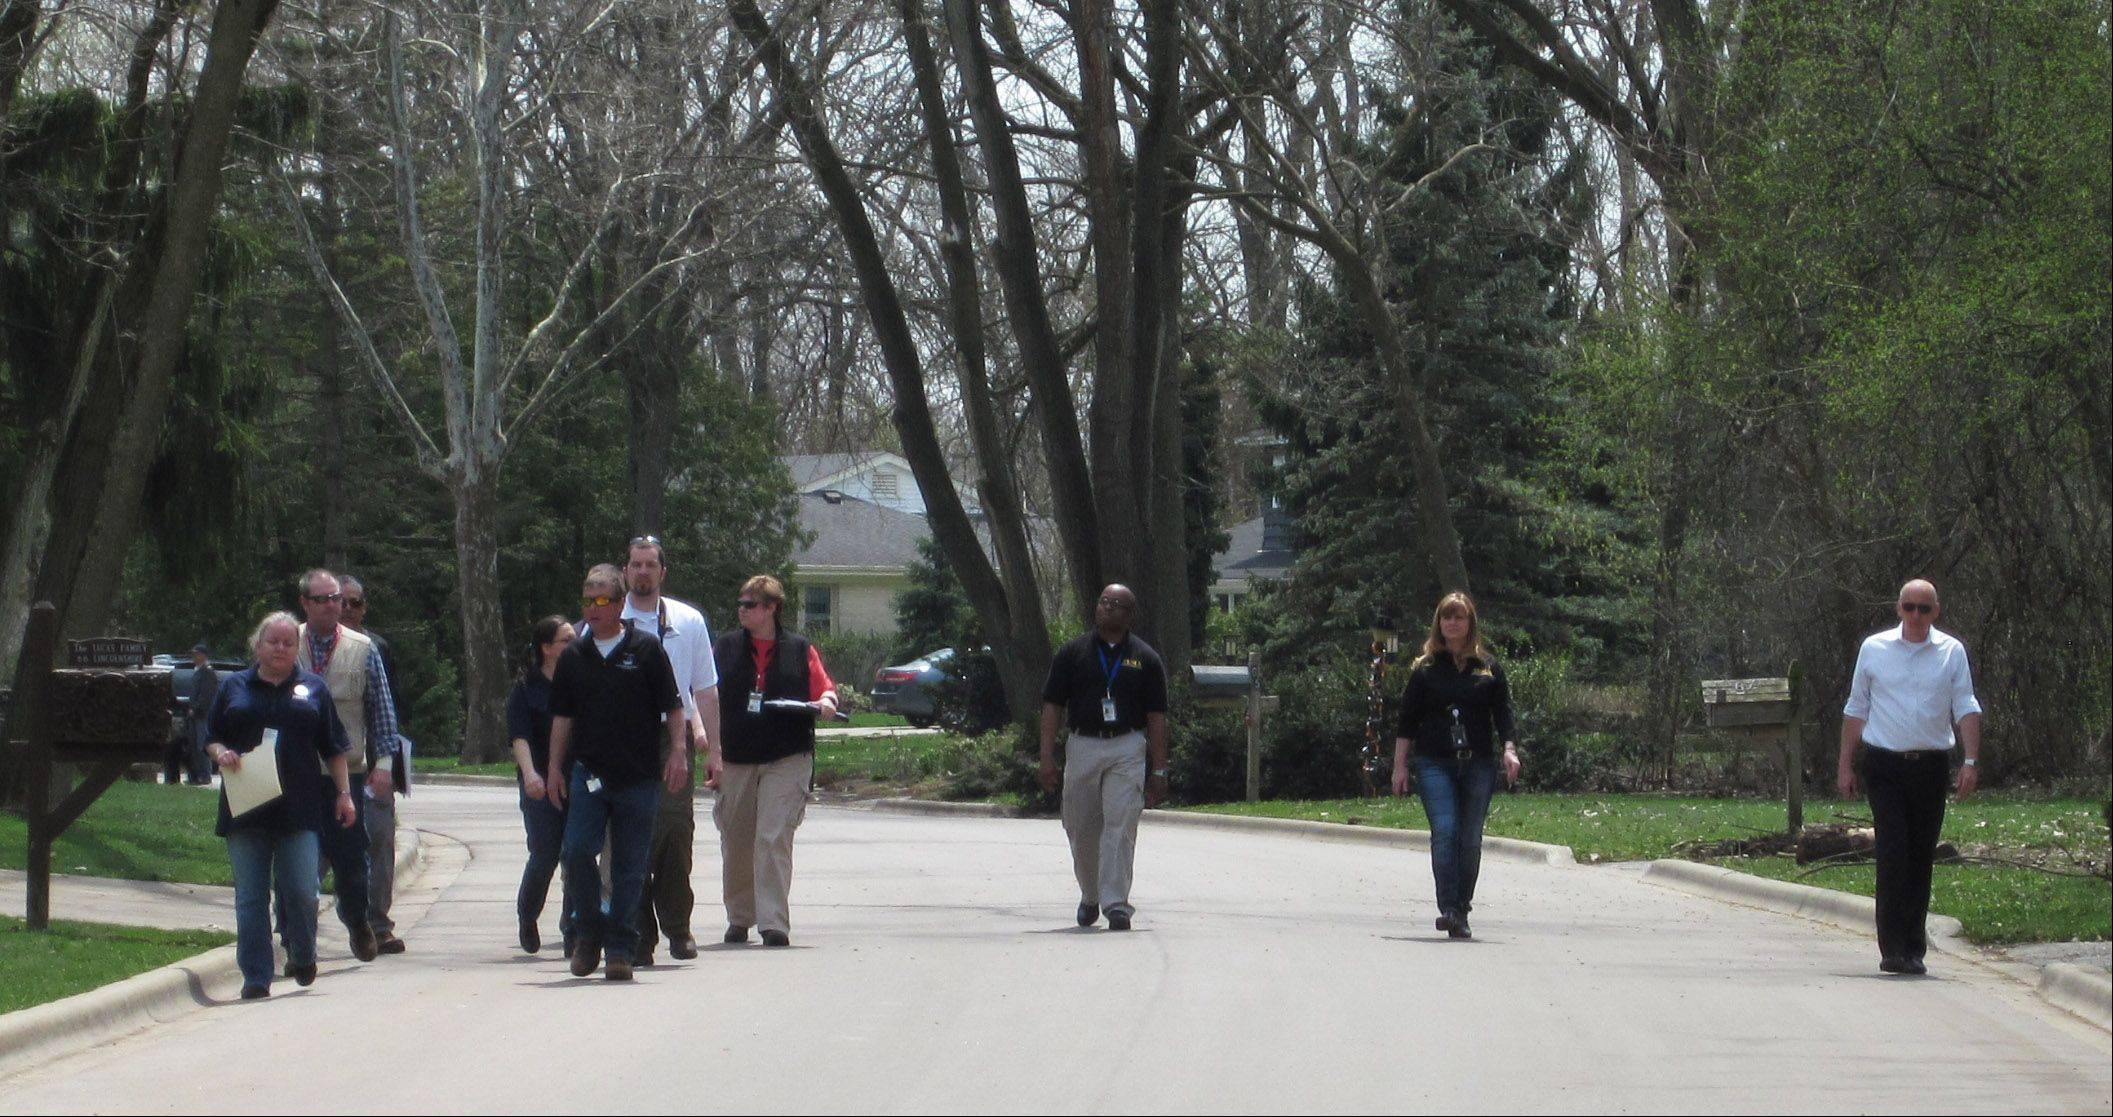 State and federal officials on Monday visit several flood-stricken areas in Lake County, including this neighborhood in Lincolnshire, as part of a preliminary damage assessment.